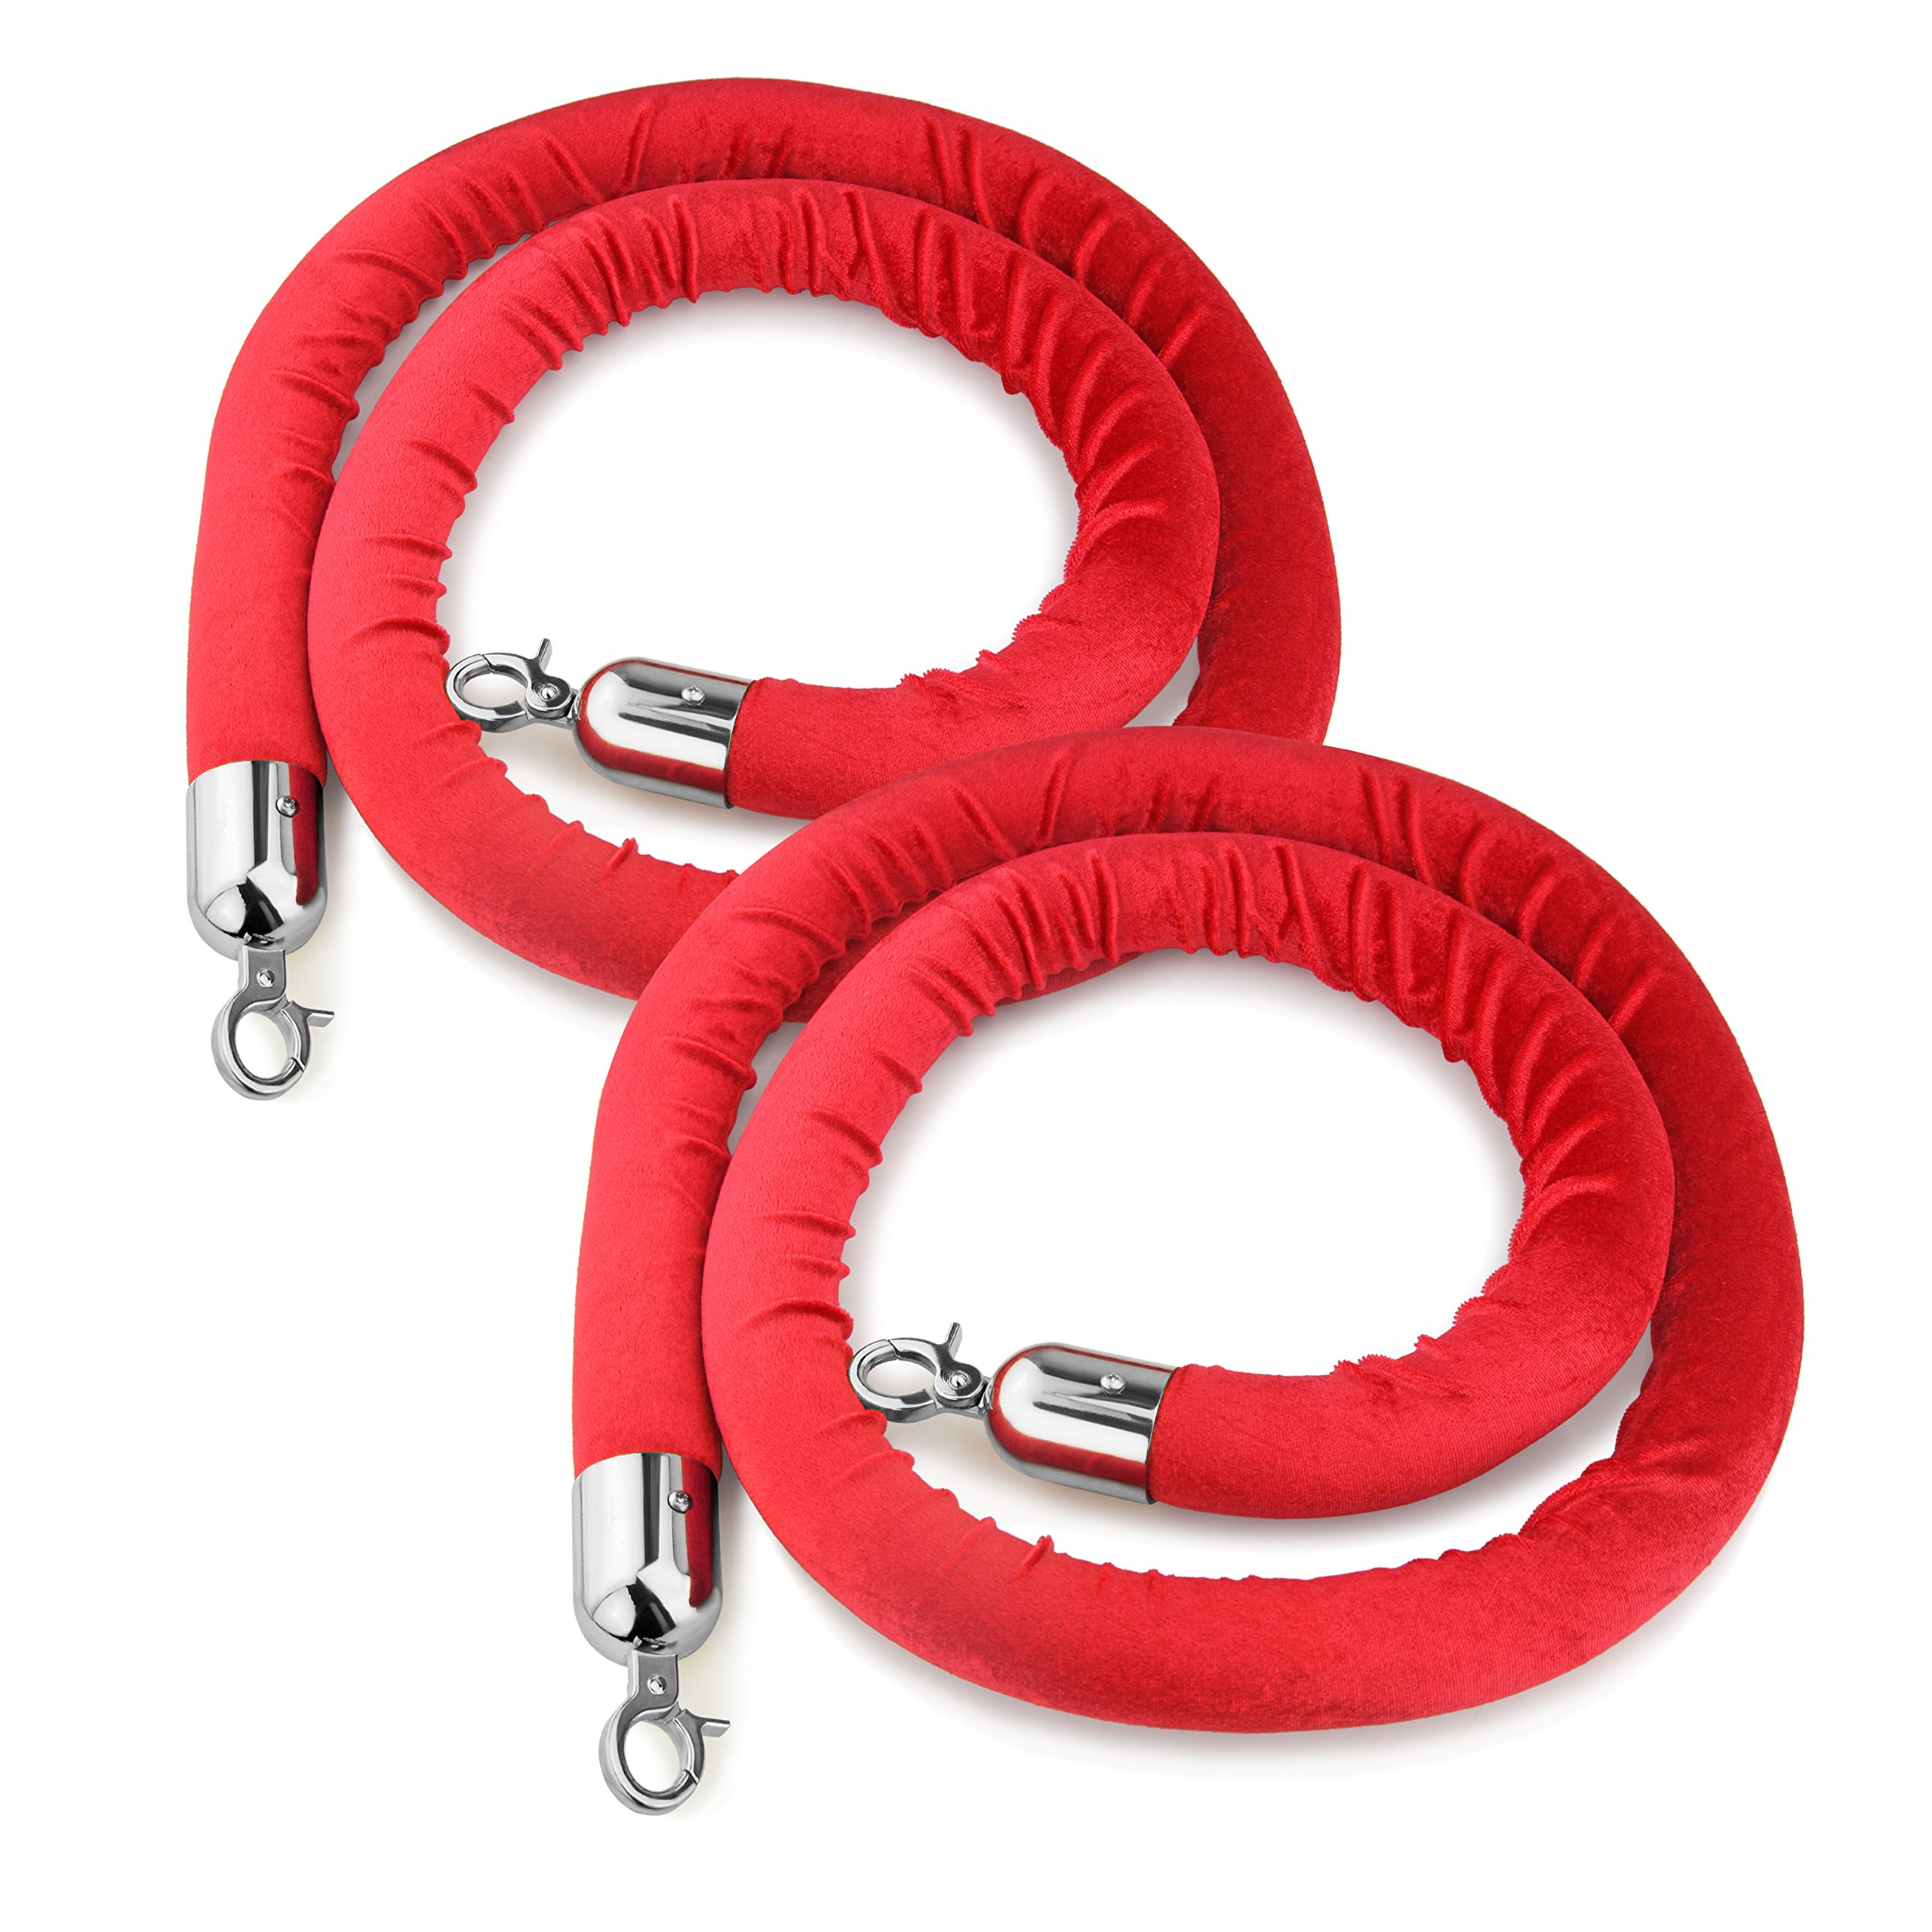 New Star Foodservice 54767 Red Velvet Stanchion Rope with Chrome Plated Hooks , 79.5-Inch, Set of 2 by New Star Foodservice Inc.